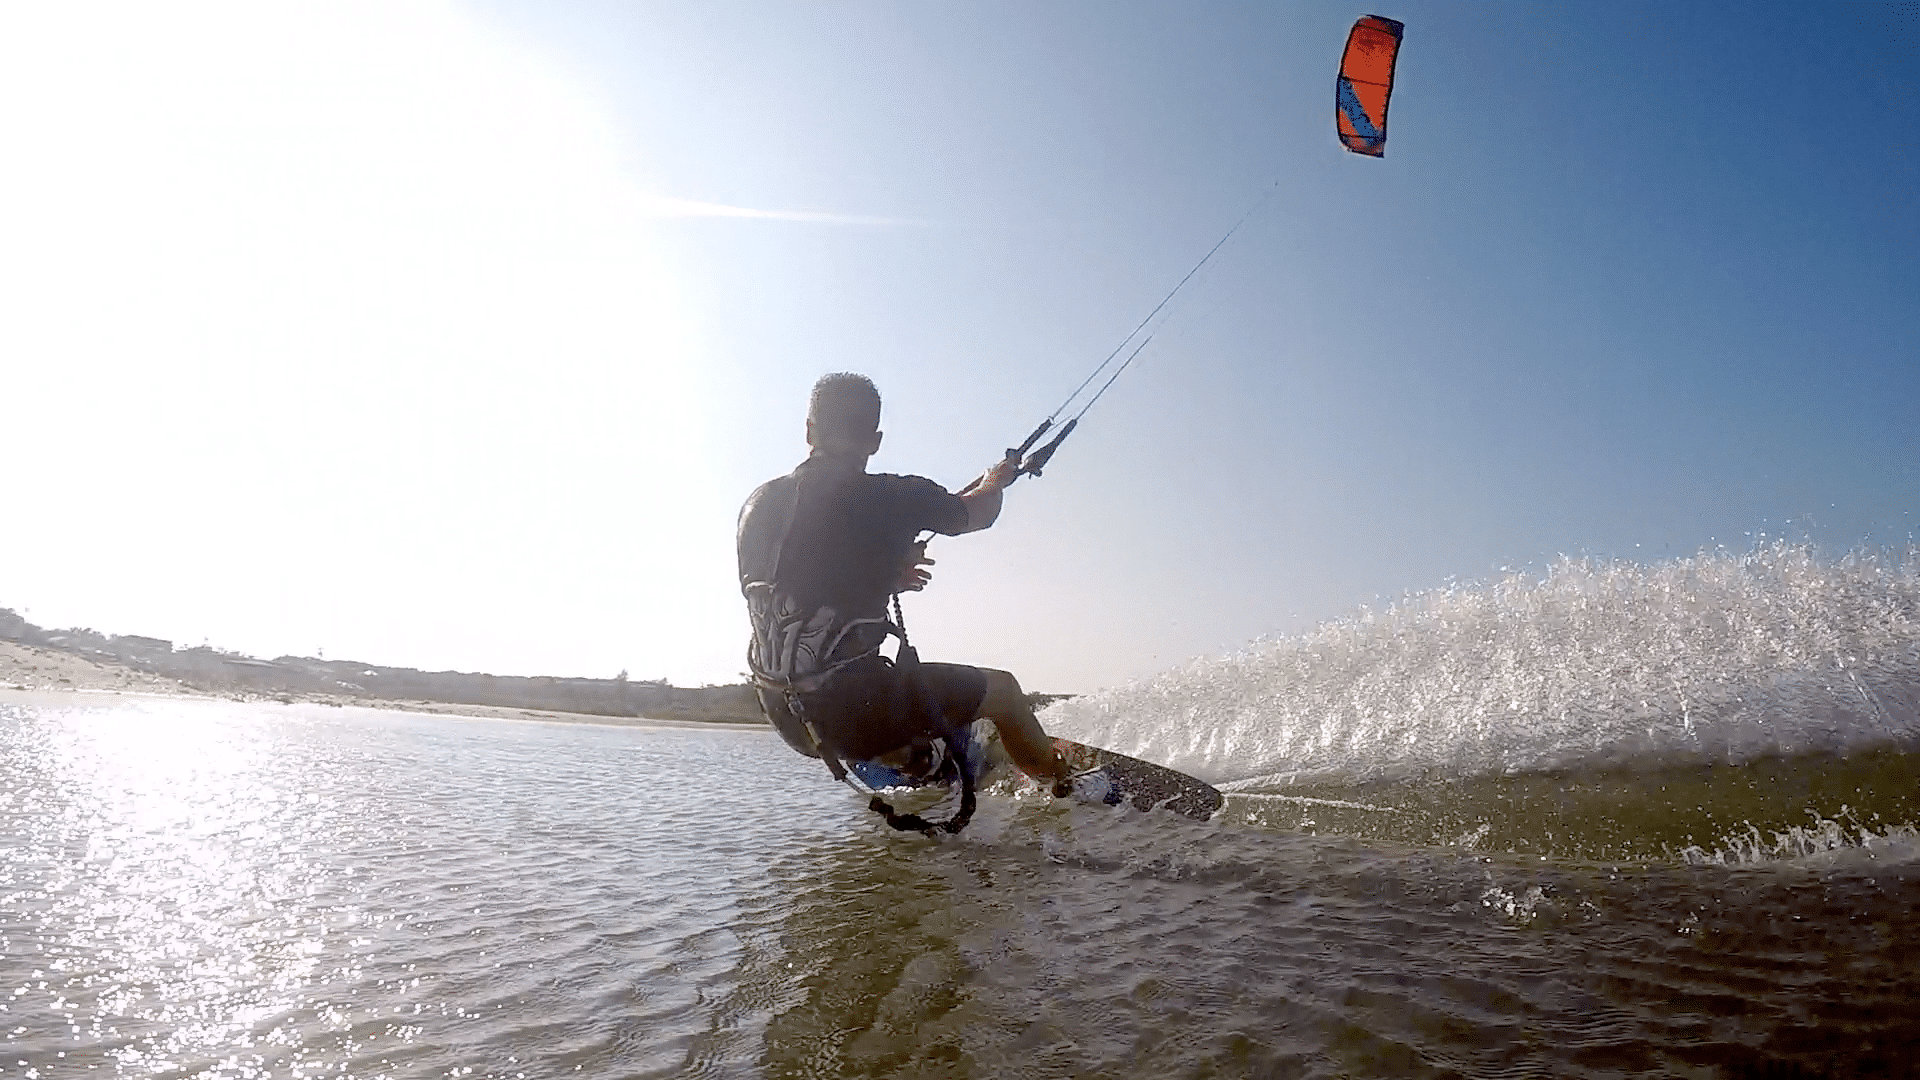 Matt Flotteron Kiteboarding in Southampton, NY with Peconic Water Sports during the Summer of 2015